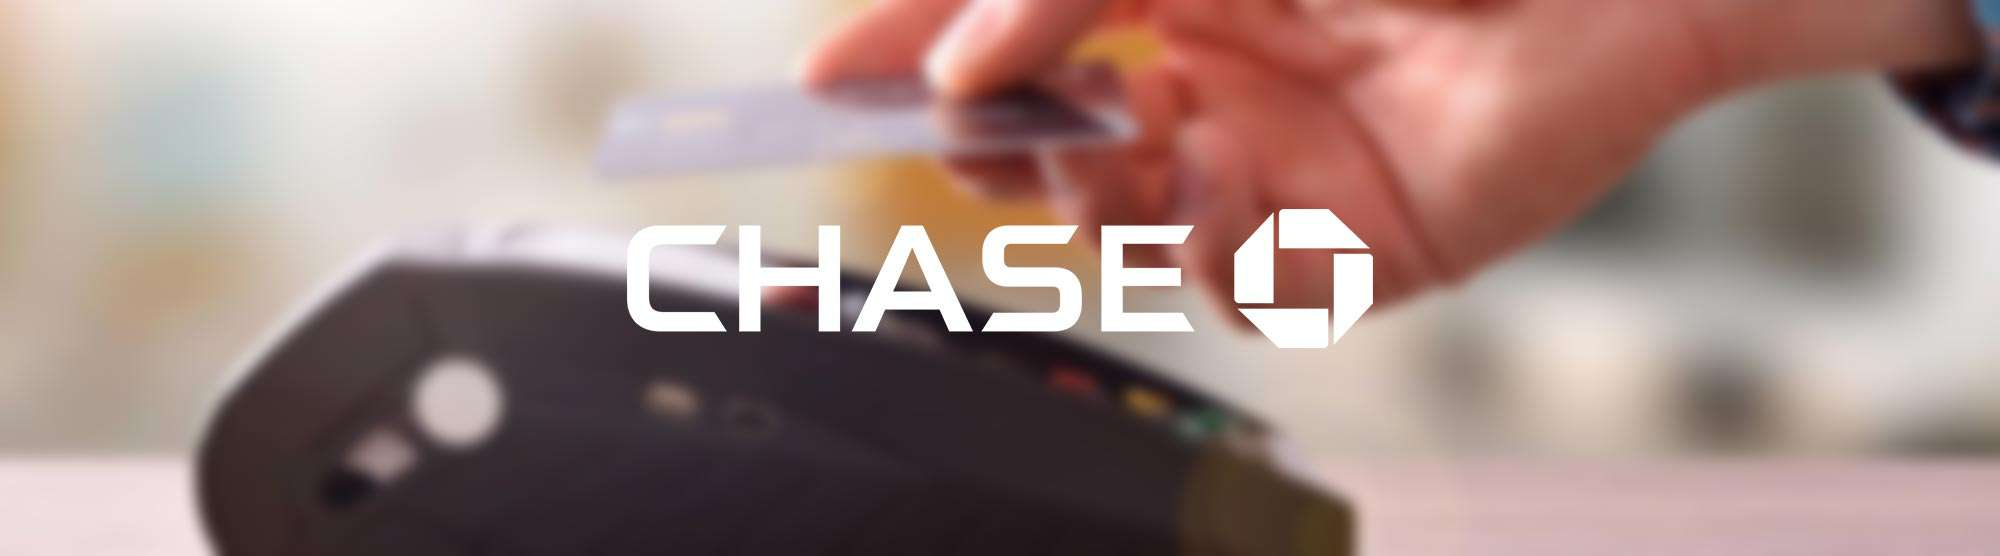 Chase Unveils New Visa Tap-to-Pay Cards - Host Merchant Services